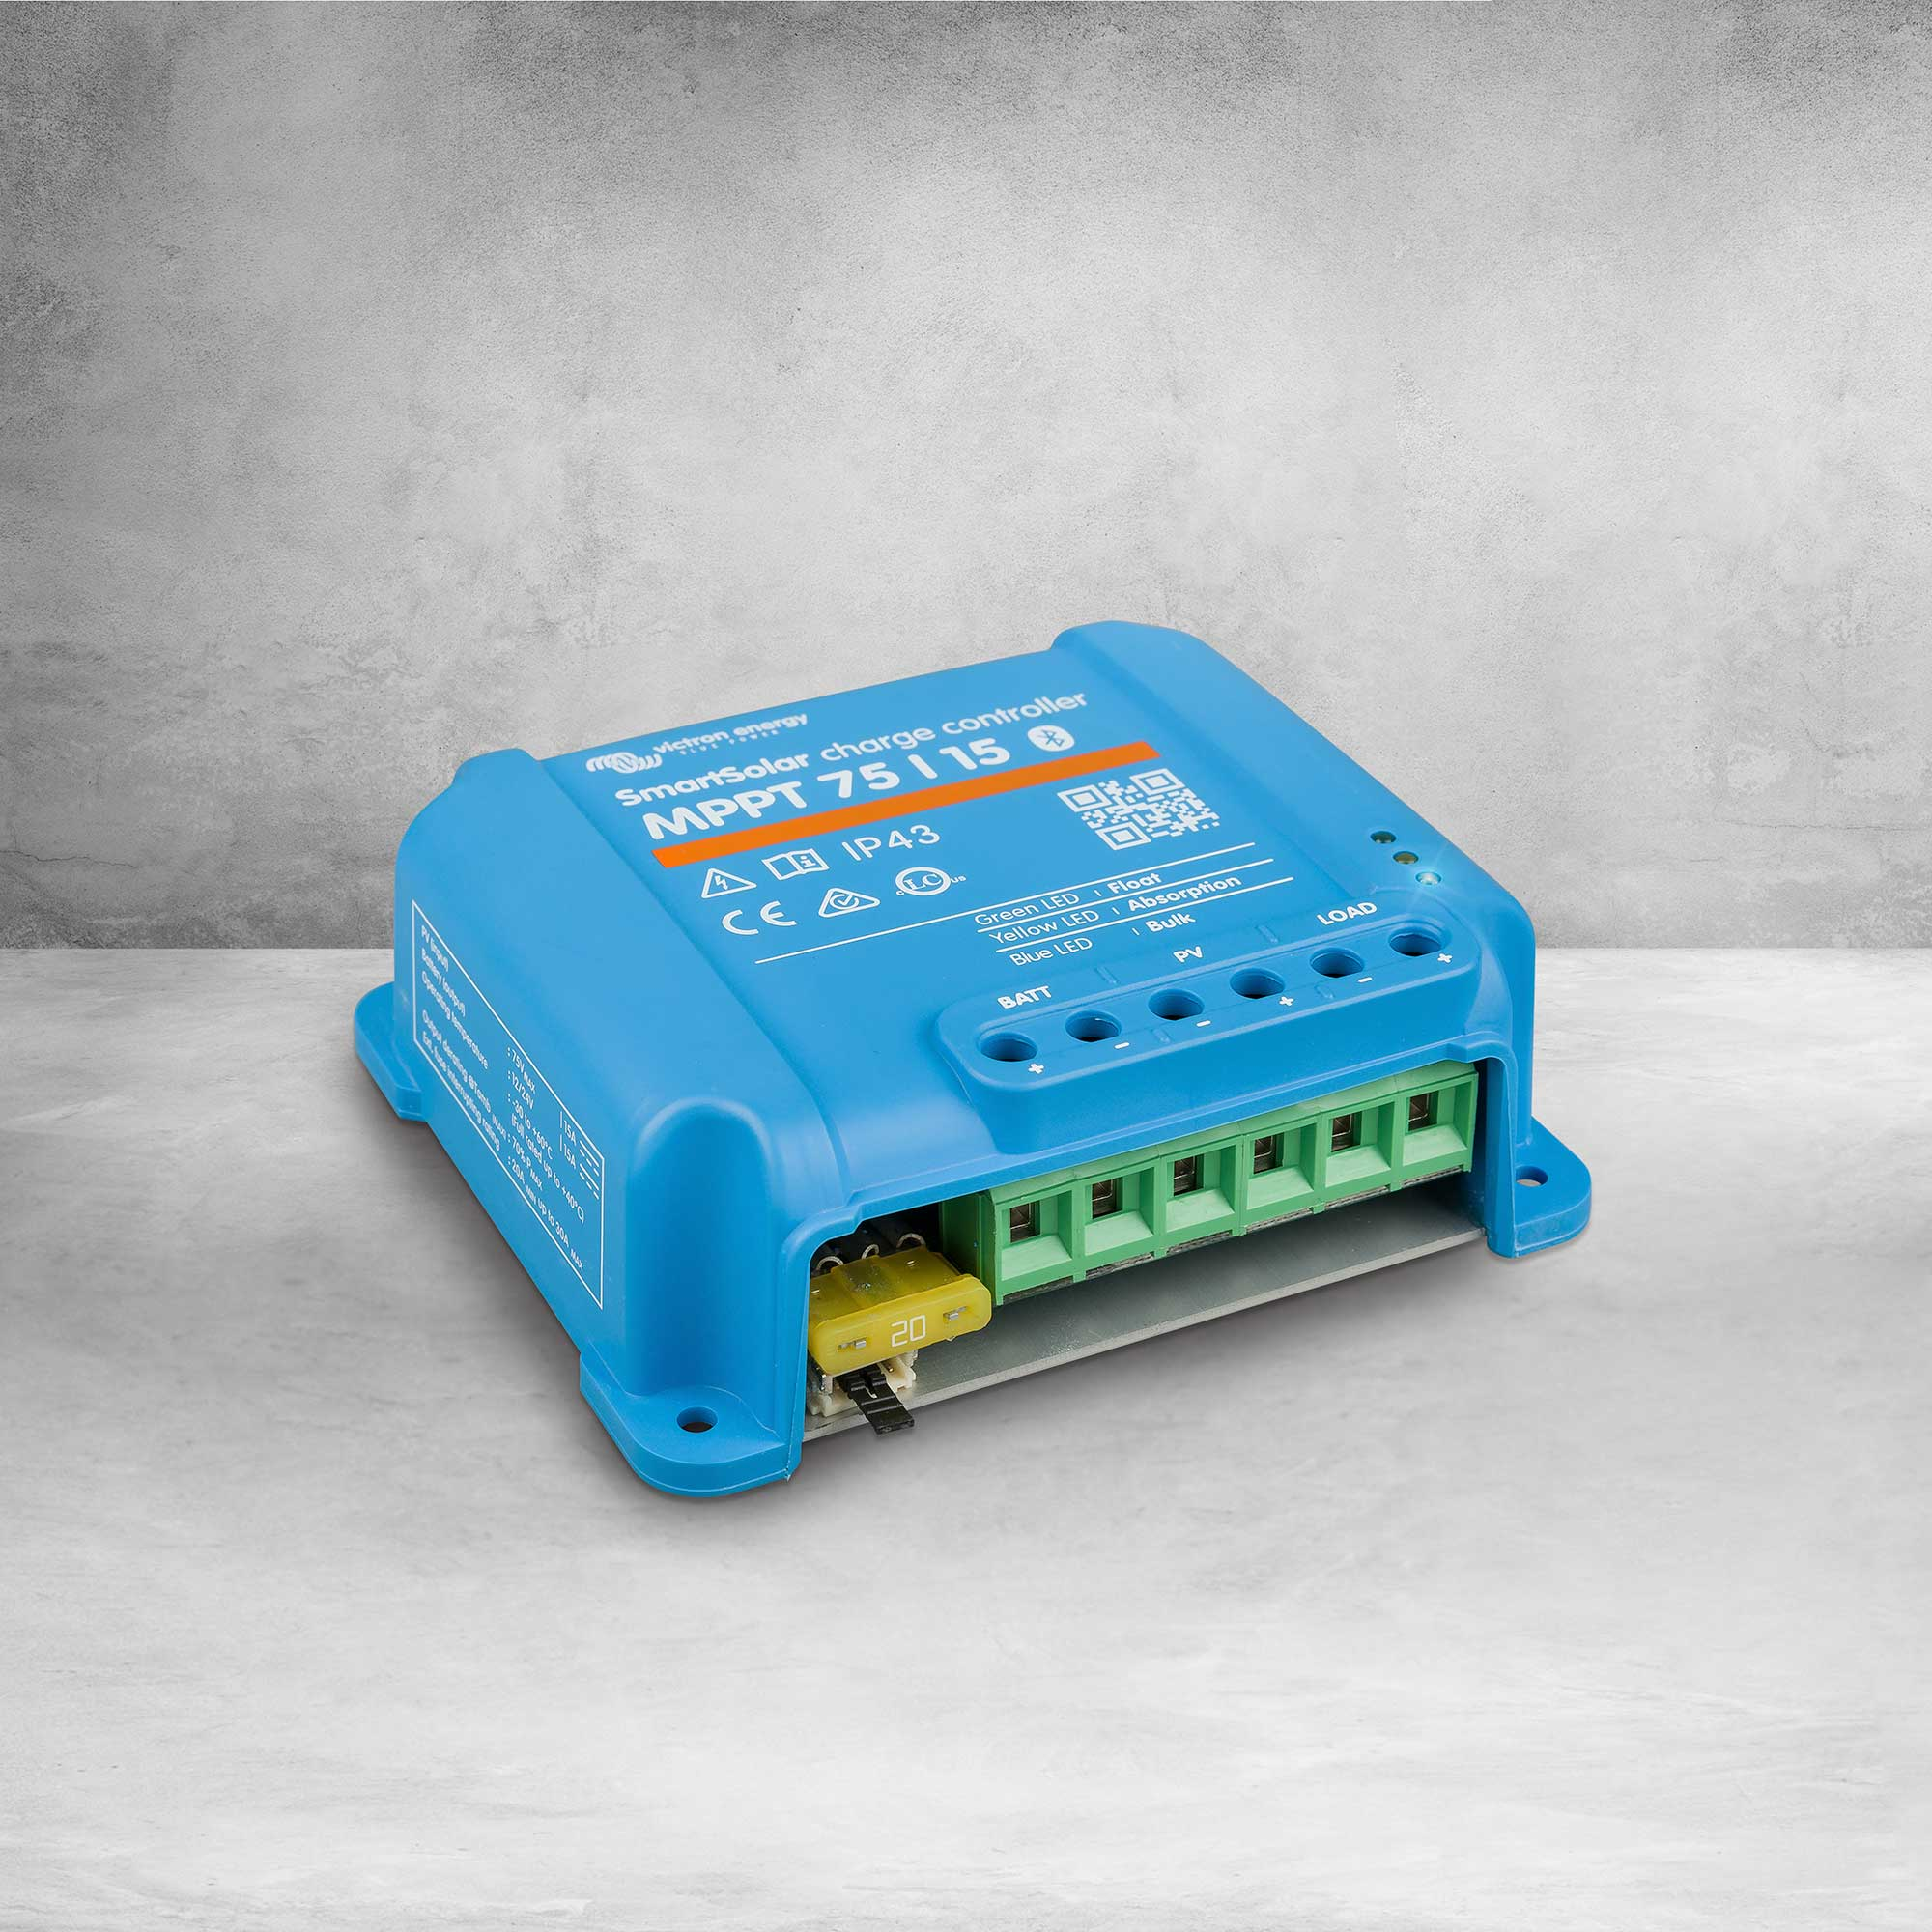 Victron SmartSolar MPPT 75/15 Solar Charge Controller